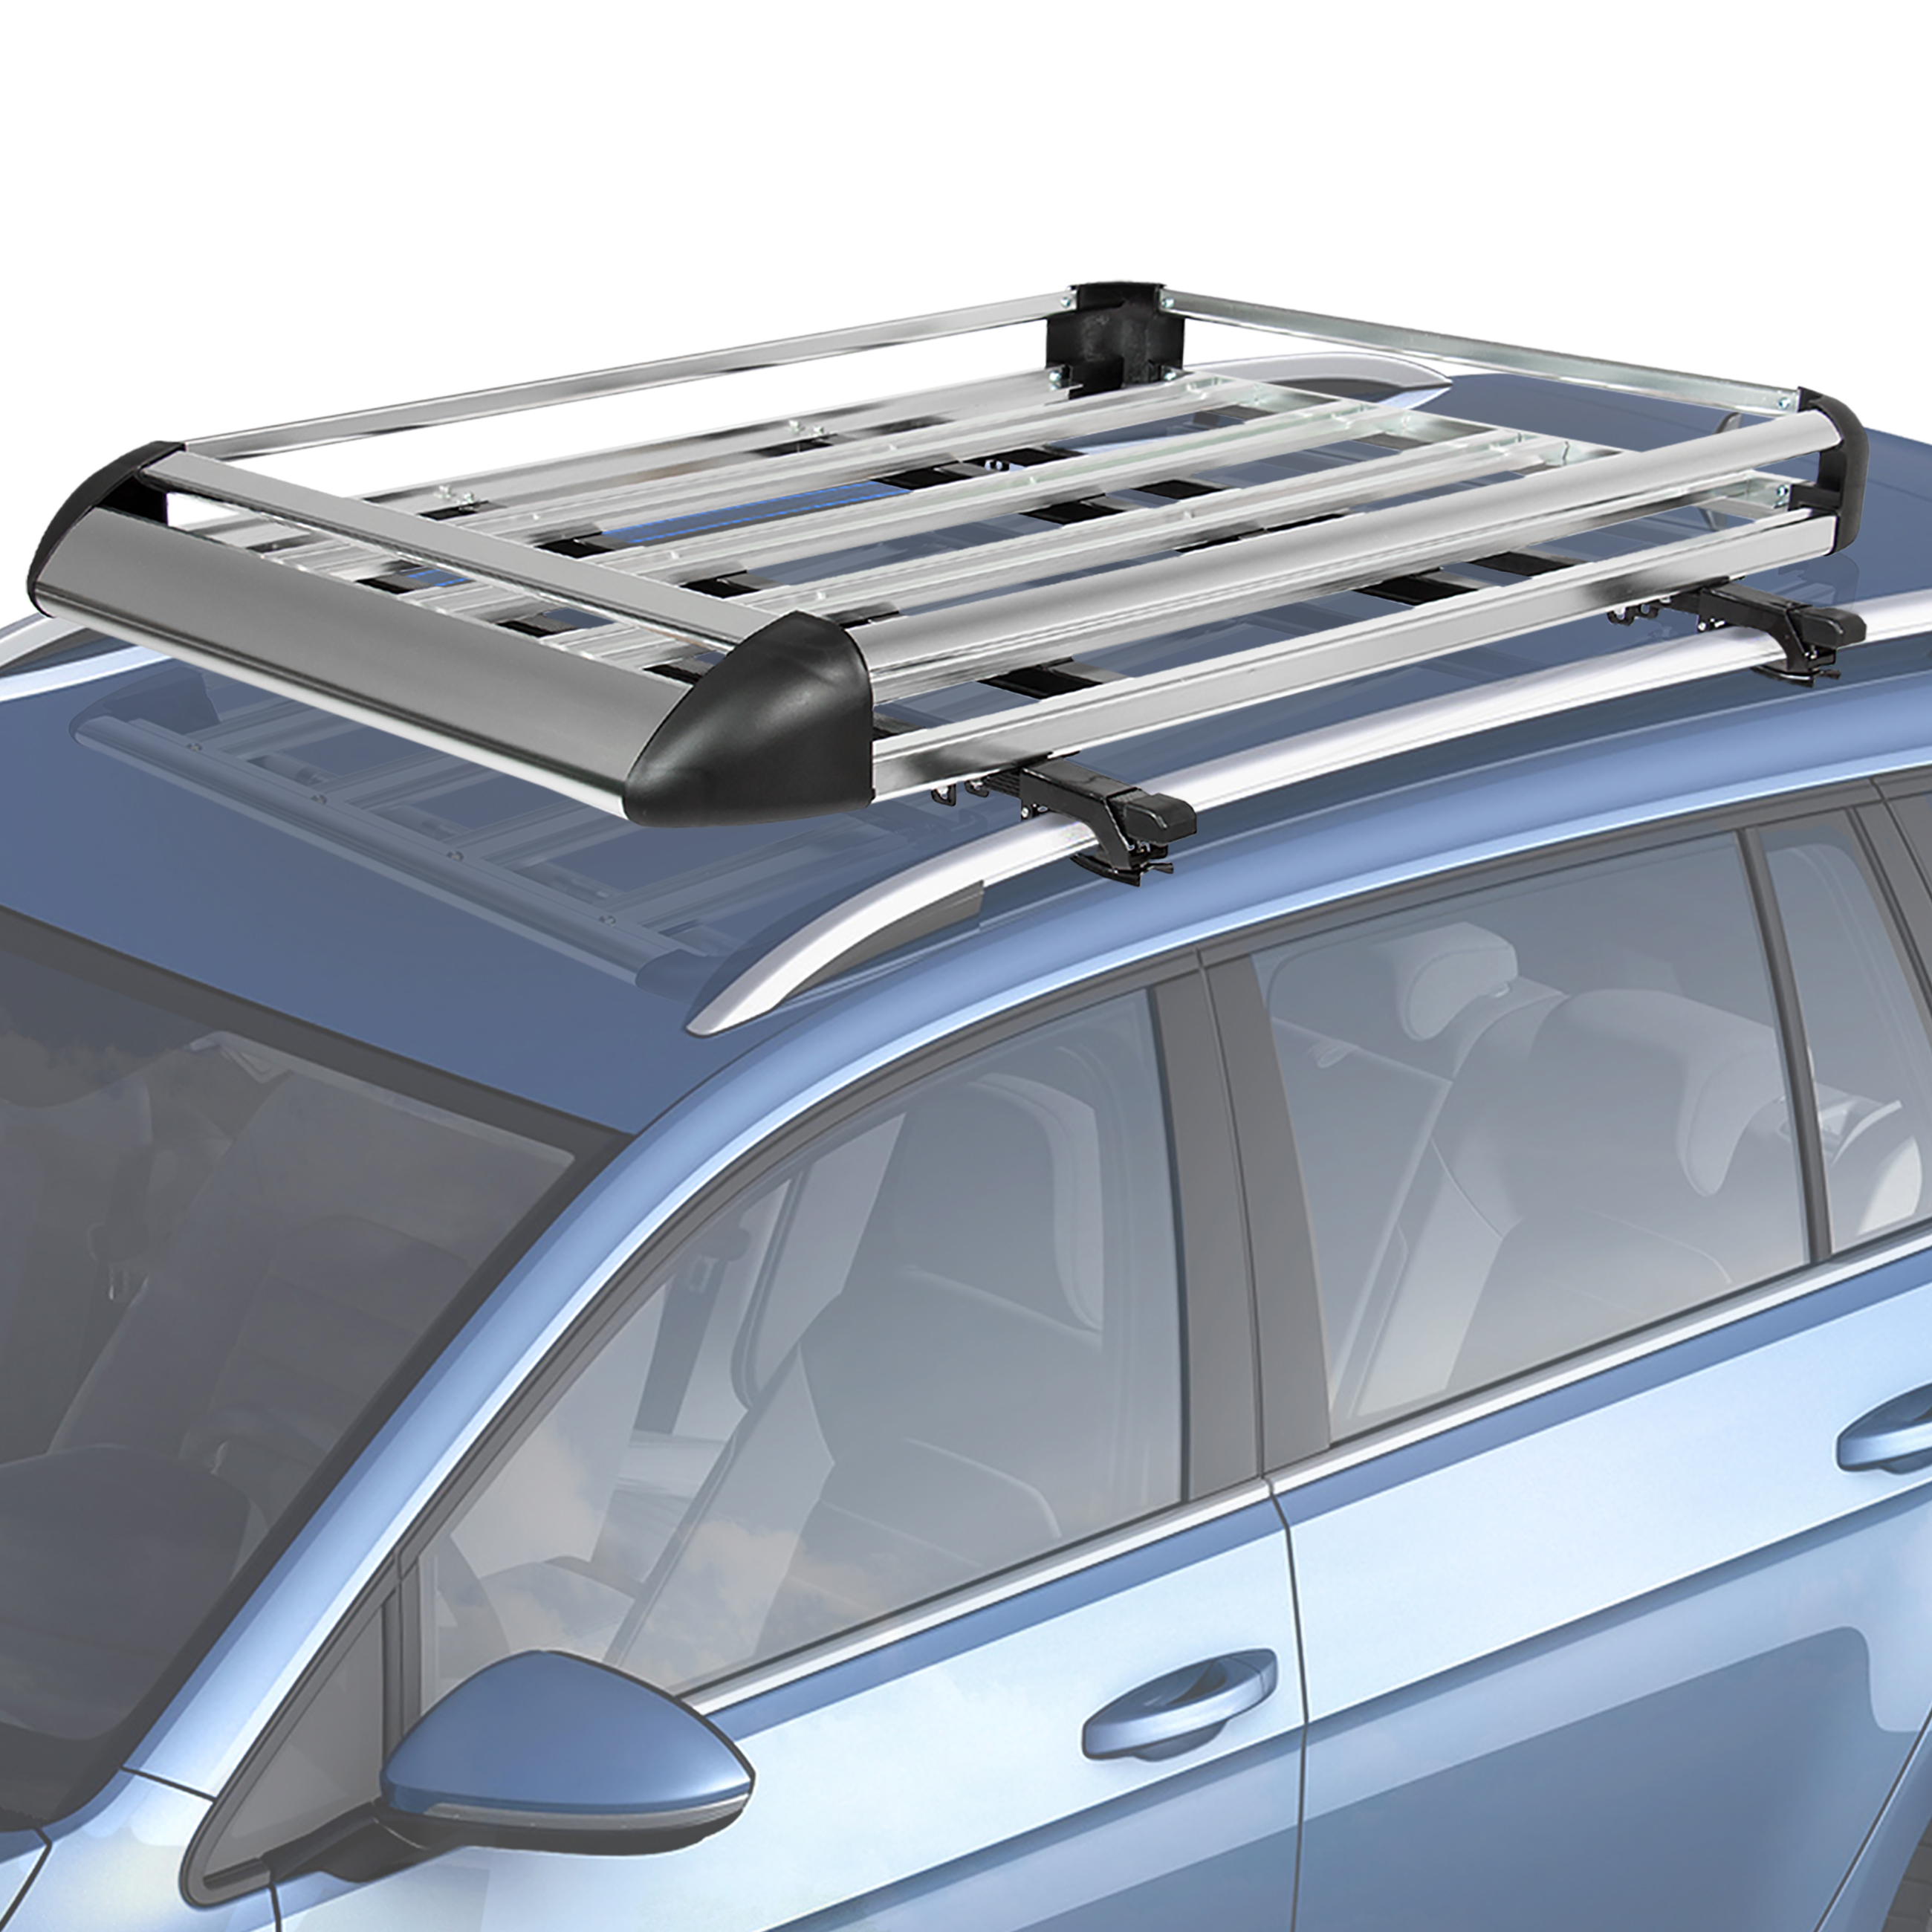 bumper guarantee car lifetime racks galvanized rack steel to bakkie luggage